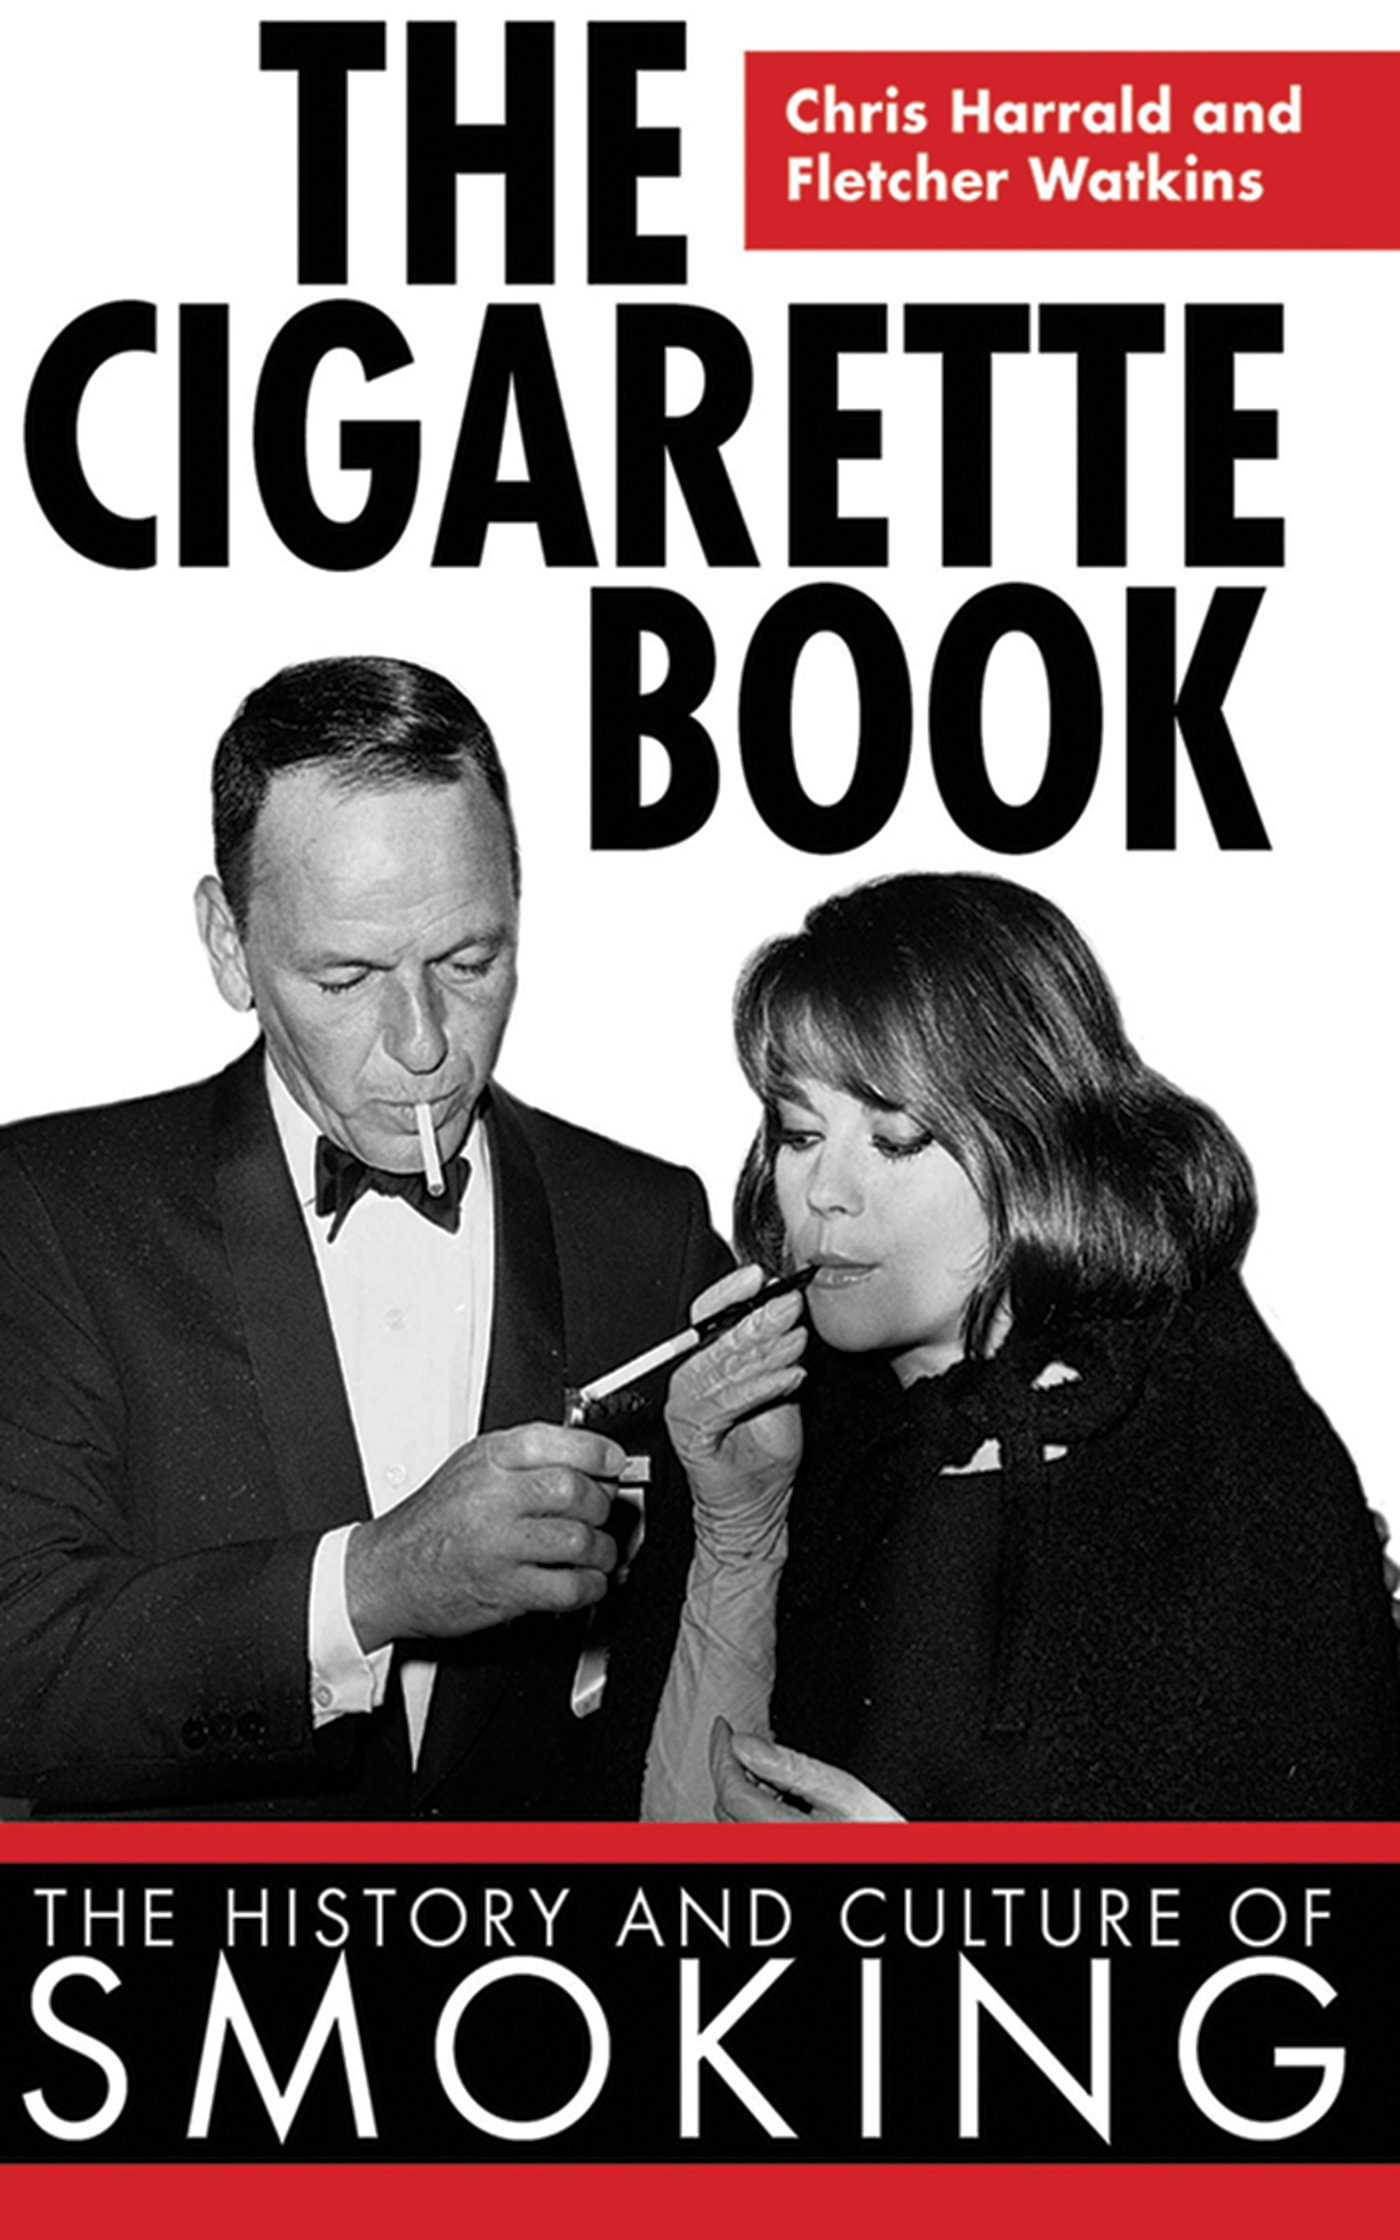 Amazon: The Cigarette Book: The History And Culture Of Smoking  (9781616080730): Chris Harrald, Fletcher Watkins: Books